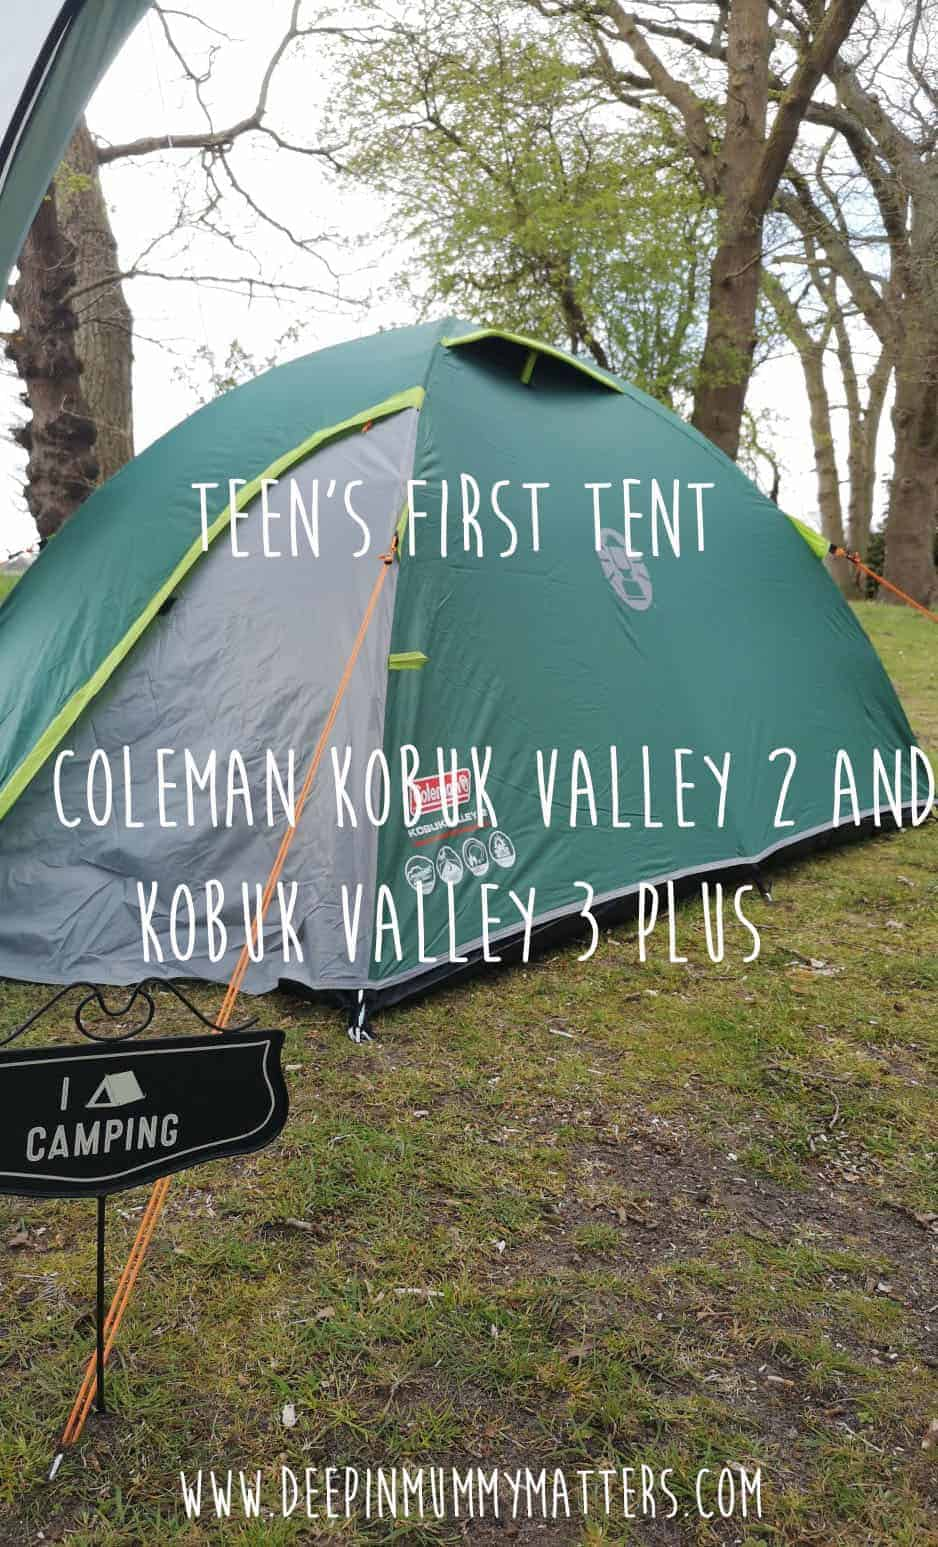 Teen's First Tent - Coleman Kobuk Valley 2 and Kobuk Valley 3 Plus 1